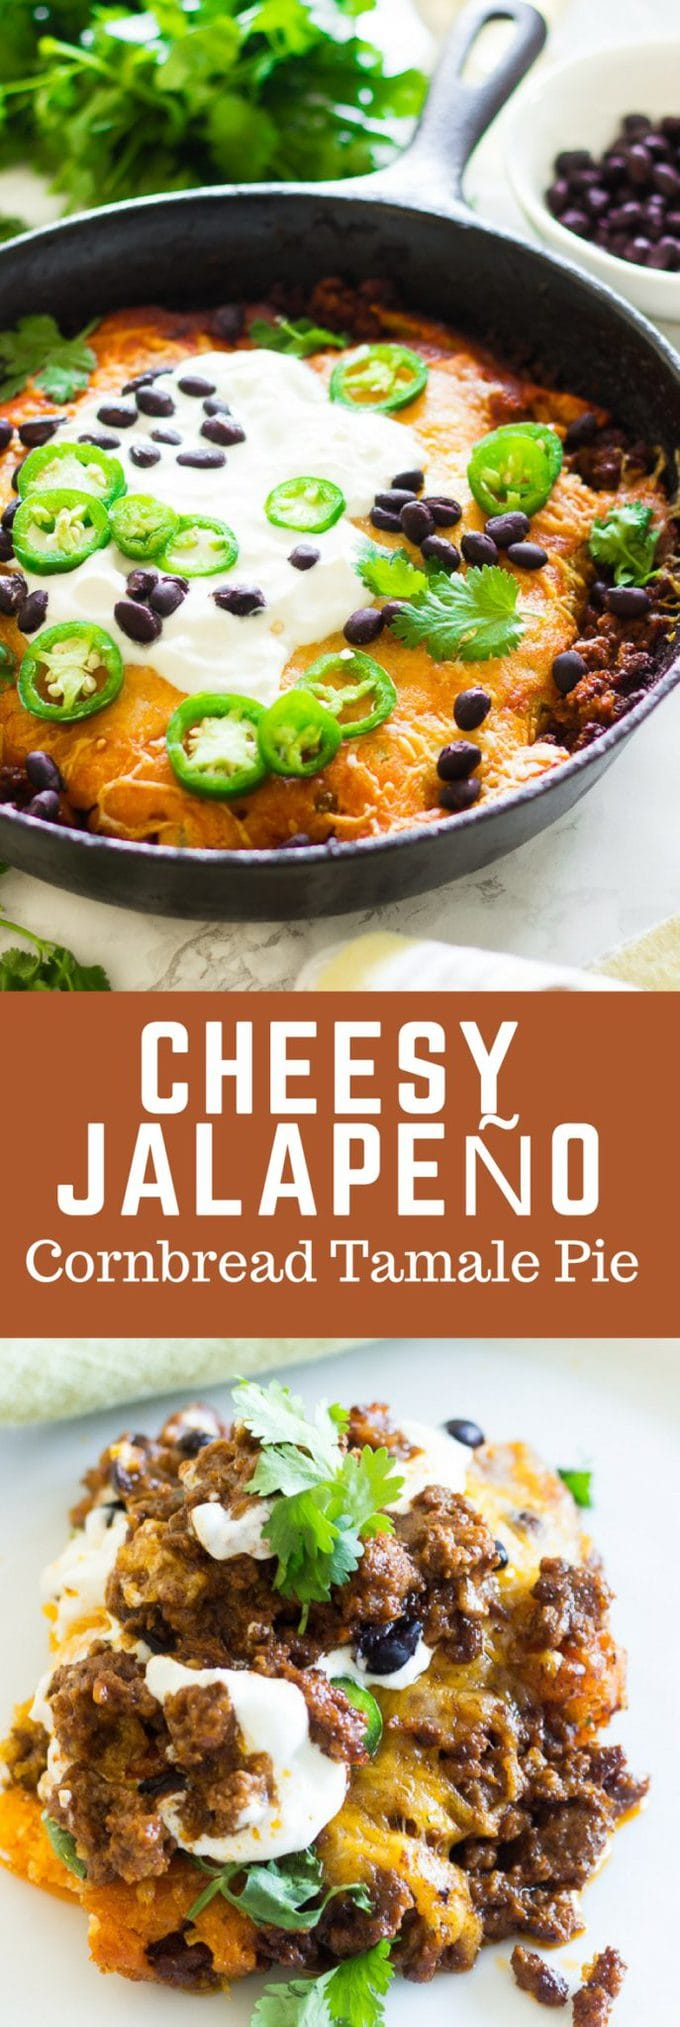 Cheesy tamale pie with cheesy cornbread topping plus more cheese on top of that! It's filled with black beans, more cheese and seasoned ground beef. You can choose to infuse with chili powder mix ,taco seasoning or your favorite enchilada sauce. Top it off with sour cream, jalapeno and more black beans. This is perfect for busy weeknights!